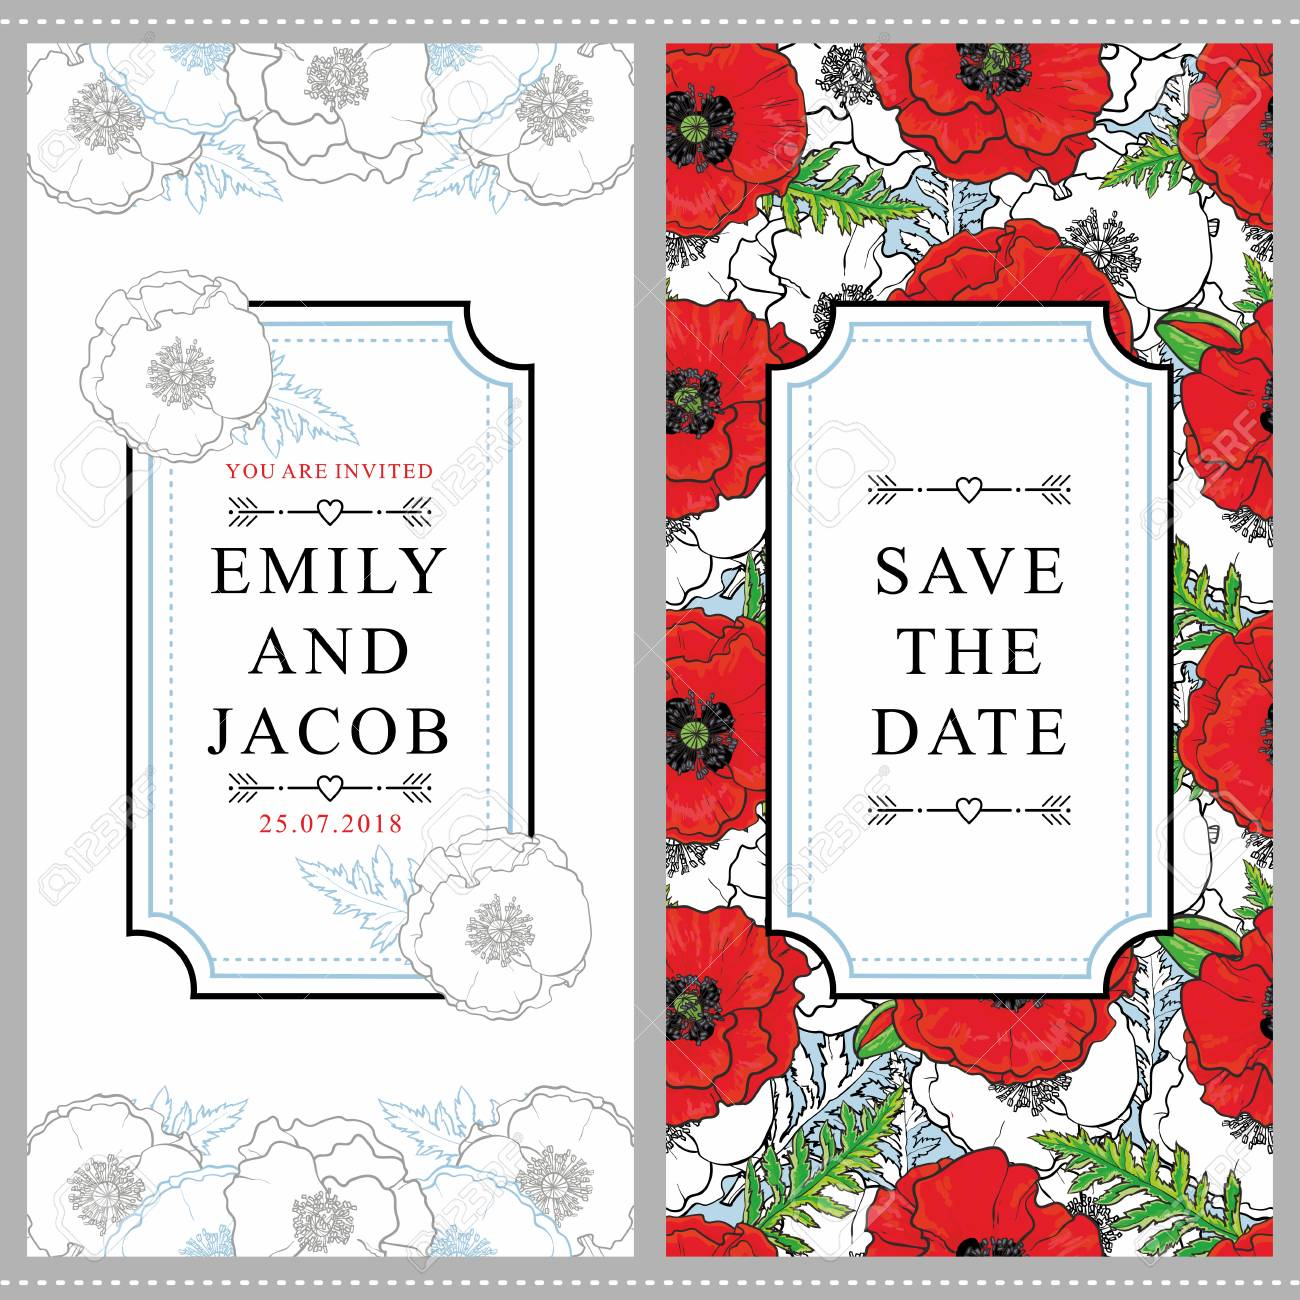 Set Of Two Wedding Invitation Designs With Beautiful Hand-drawn ...